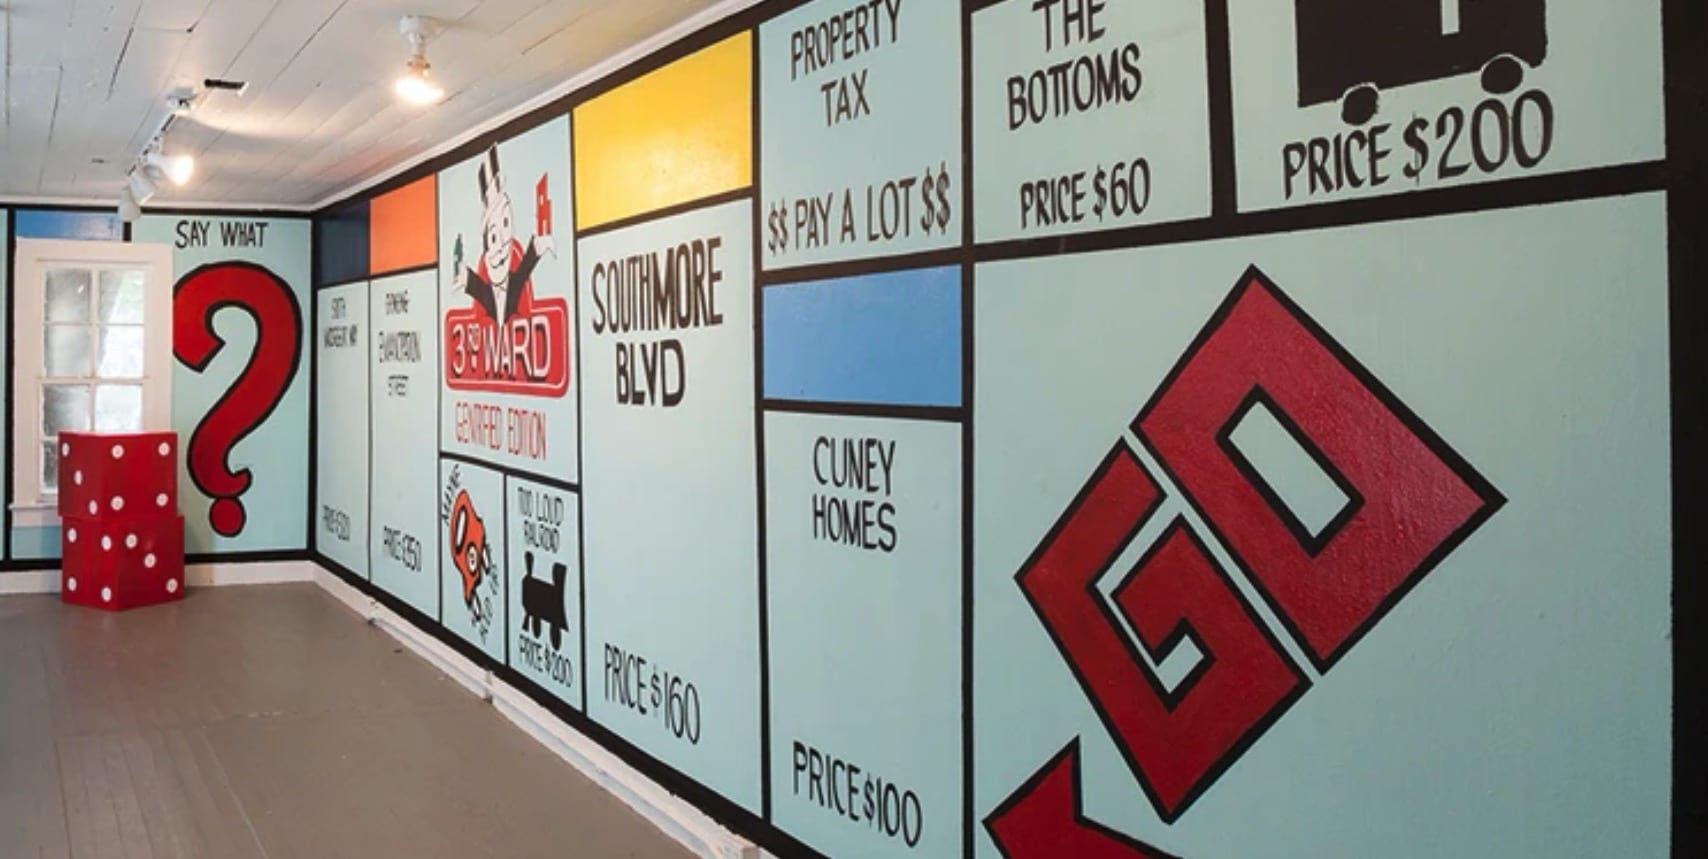 Marc Newsome's installation at Project Row Houses imagined Monopoly game representing the gentrification of Third Ward.